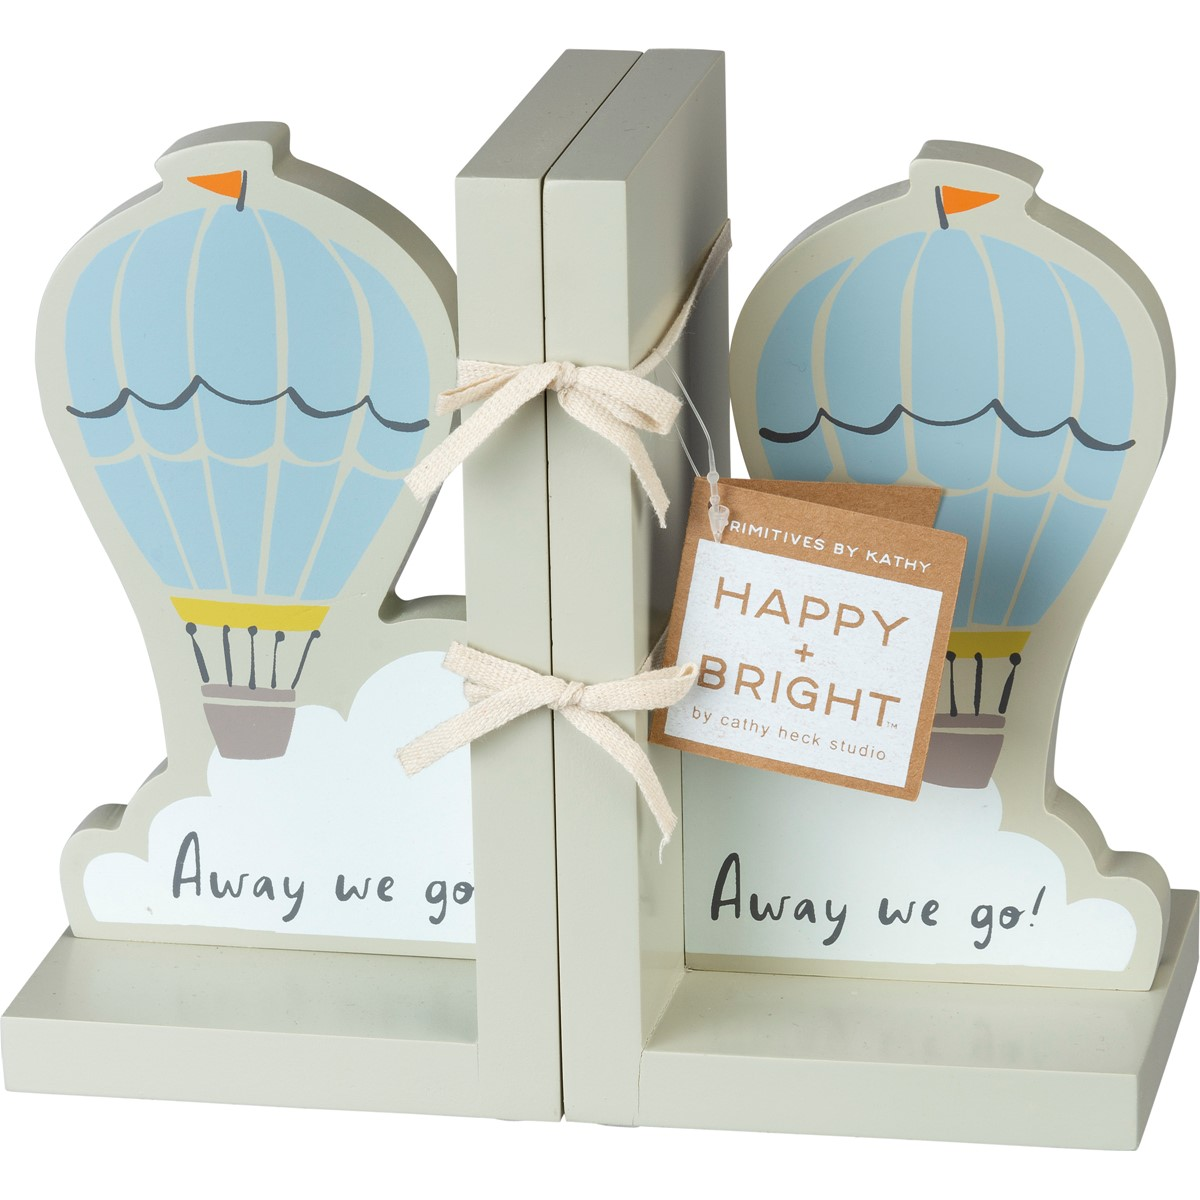 "Bookends - Away We Go - 4.25"" x 7"" x 4"" - Wood"